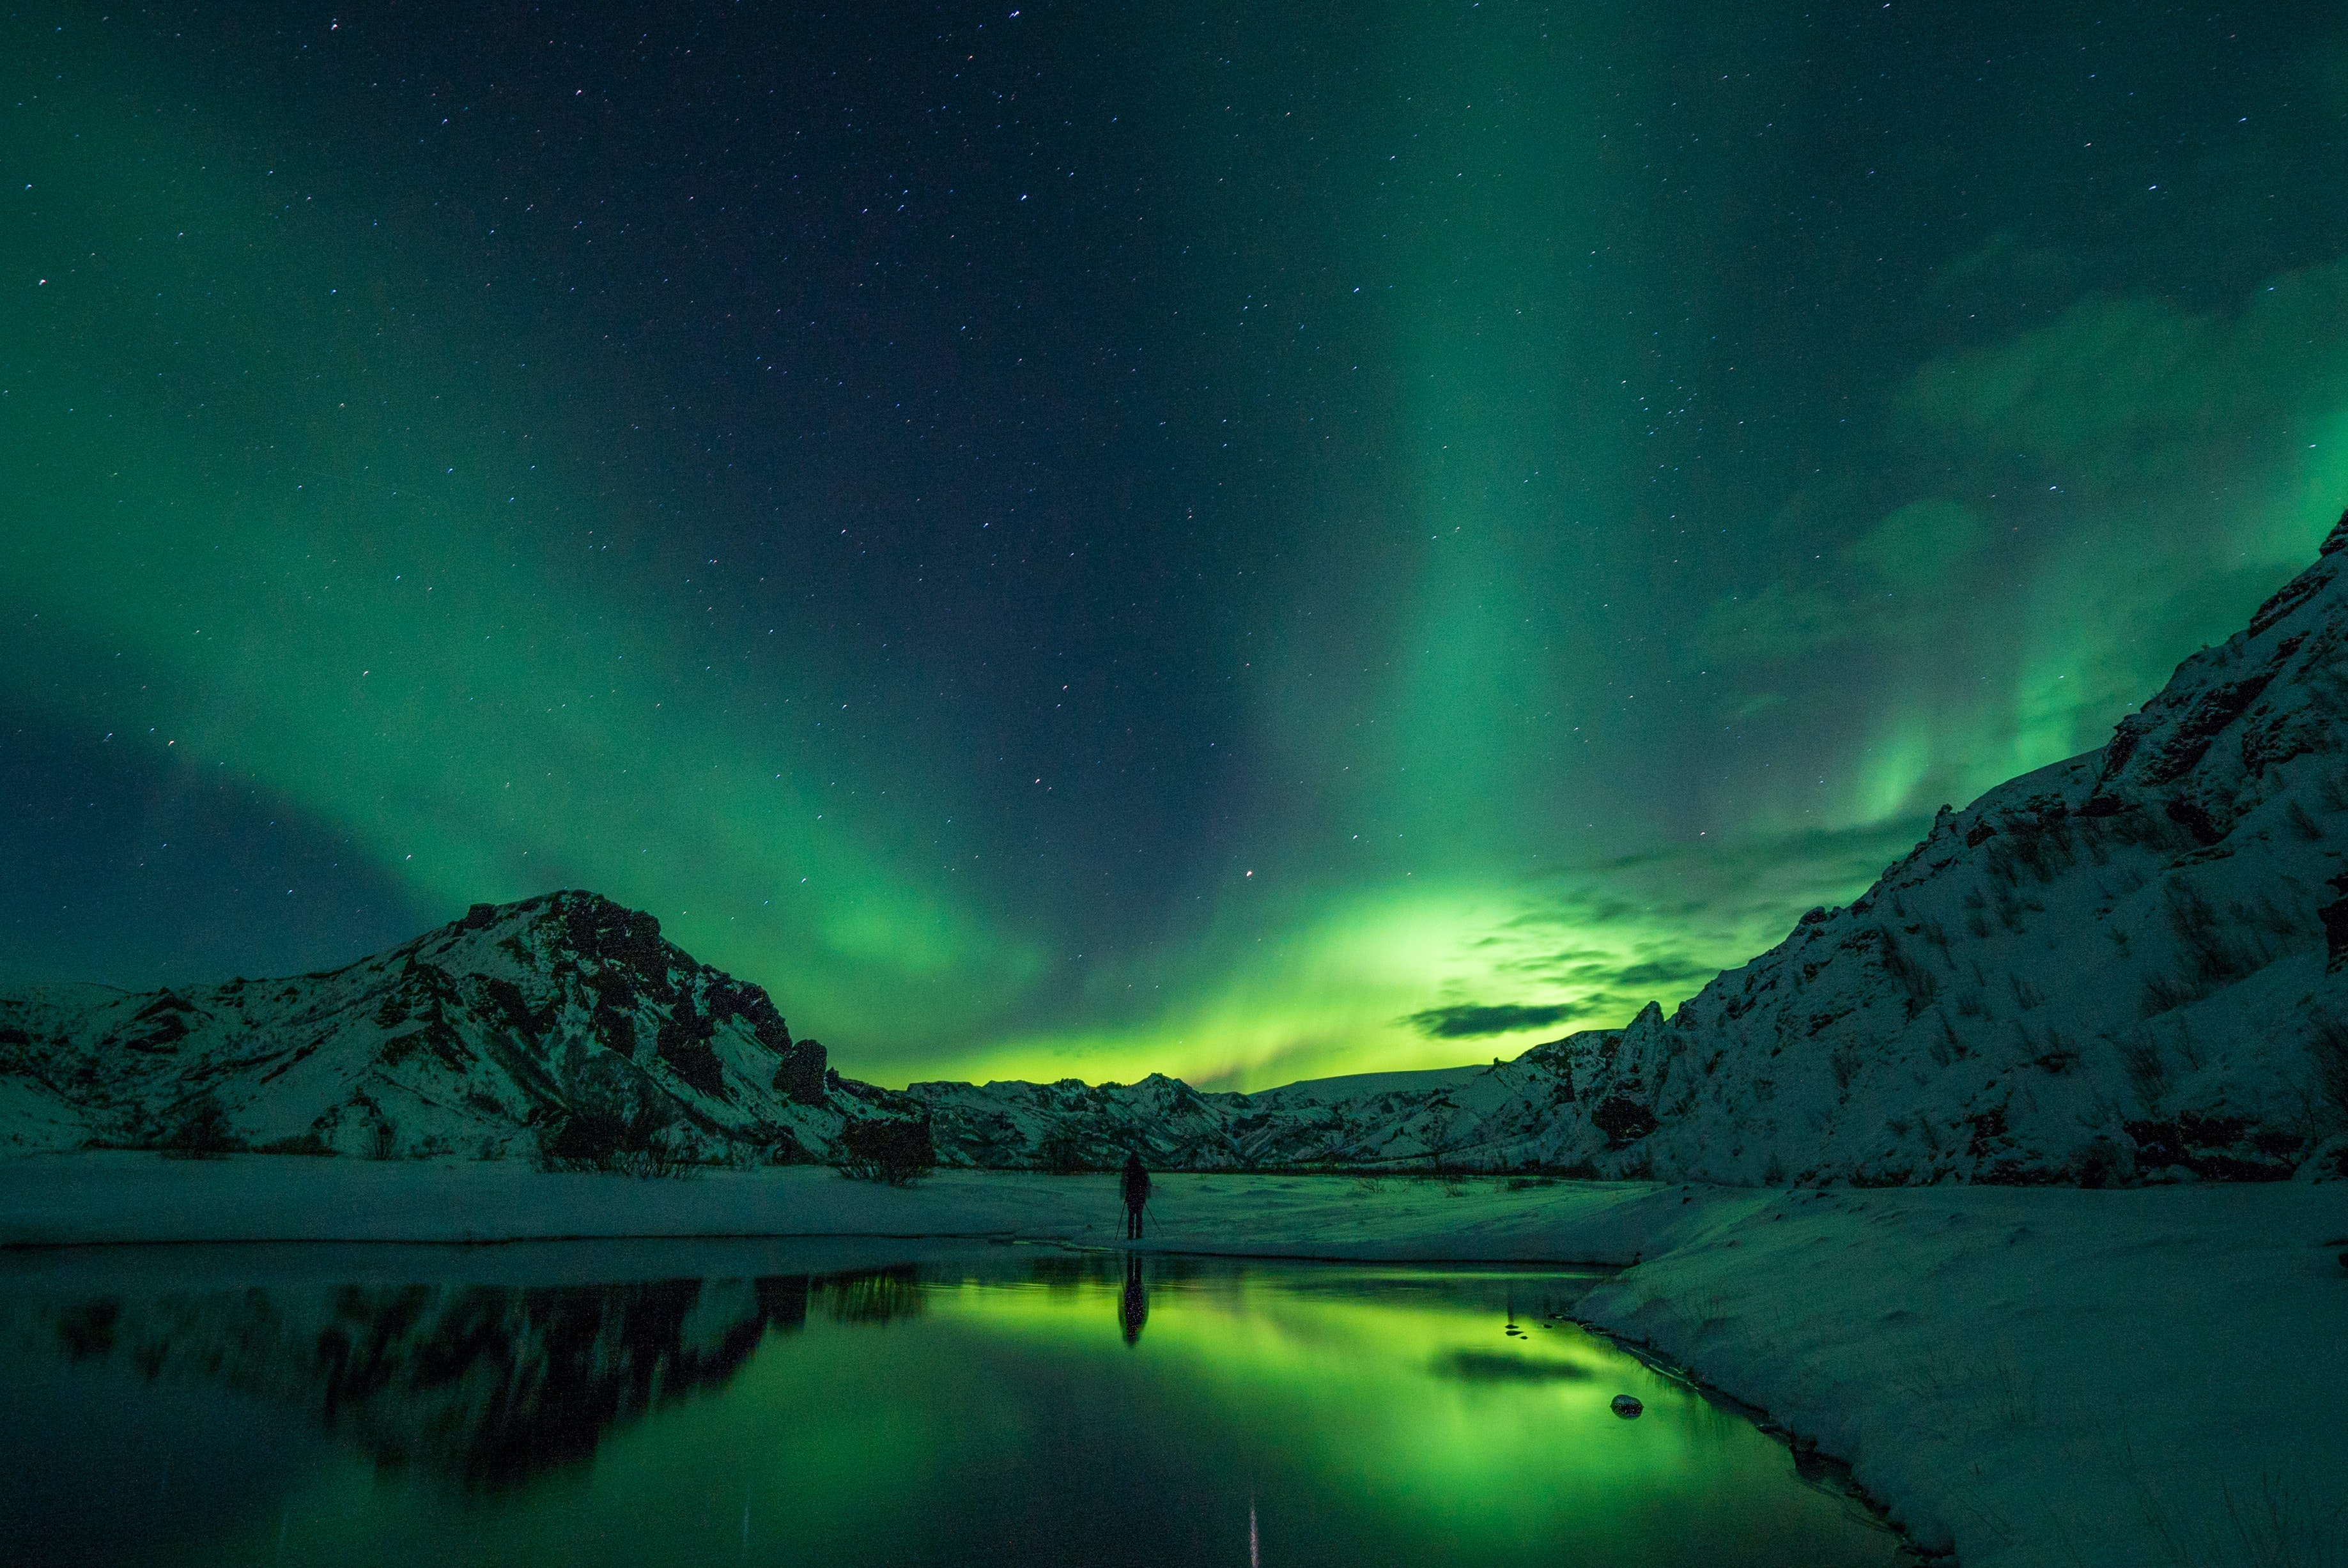 Northern lights, Iceland During Winter